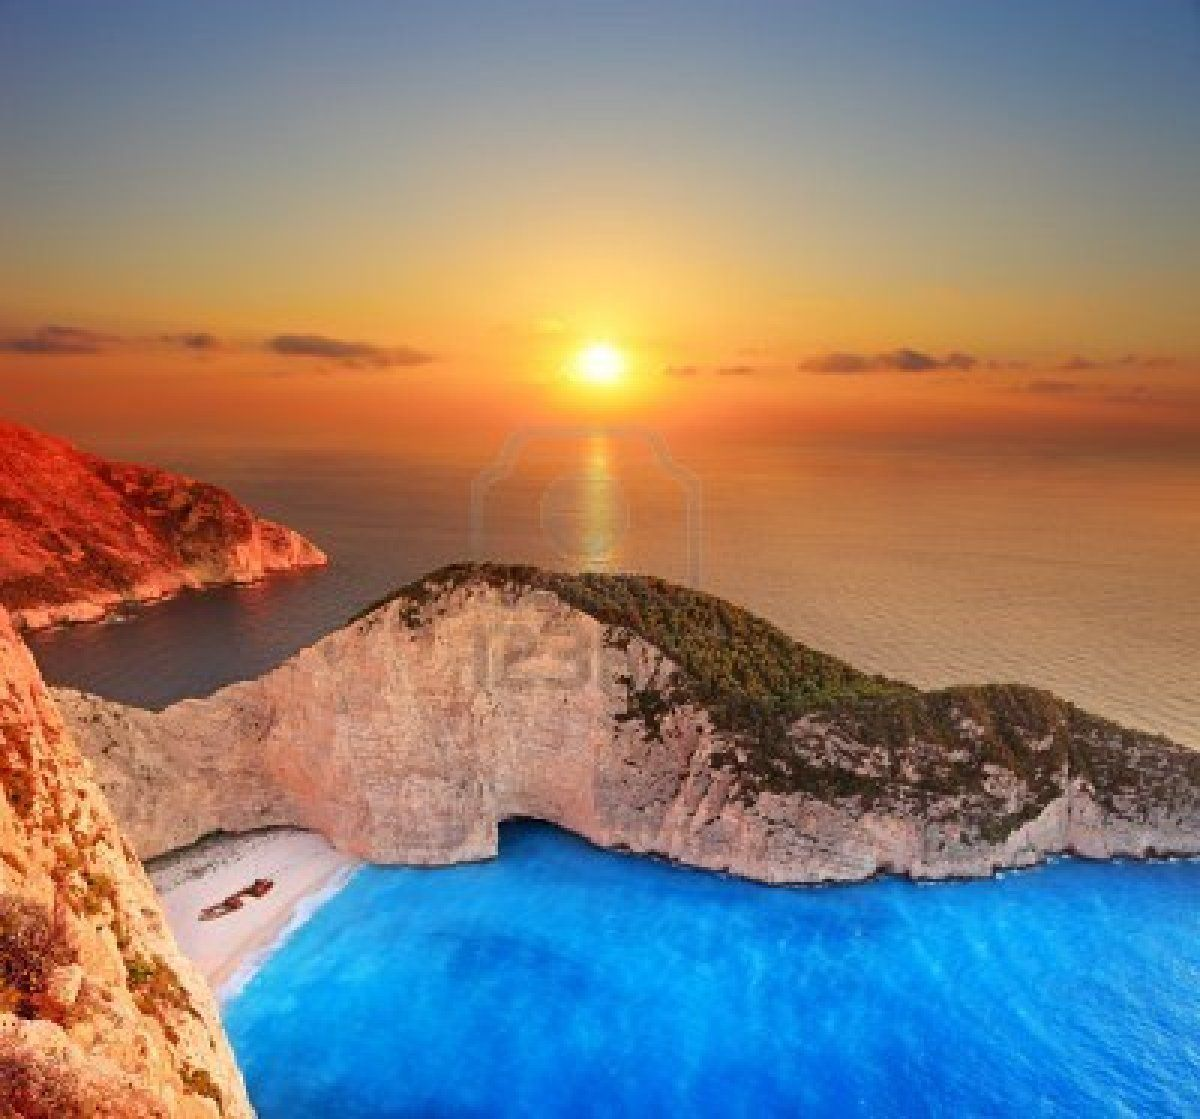 Most Beautiful Places Zakynthos: A Panorama Of Sunset Over Zakynthos Island With A